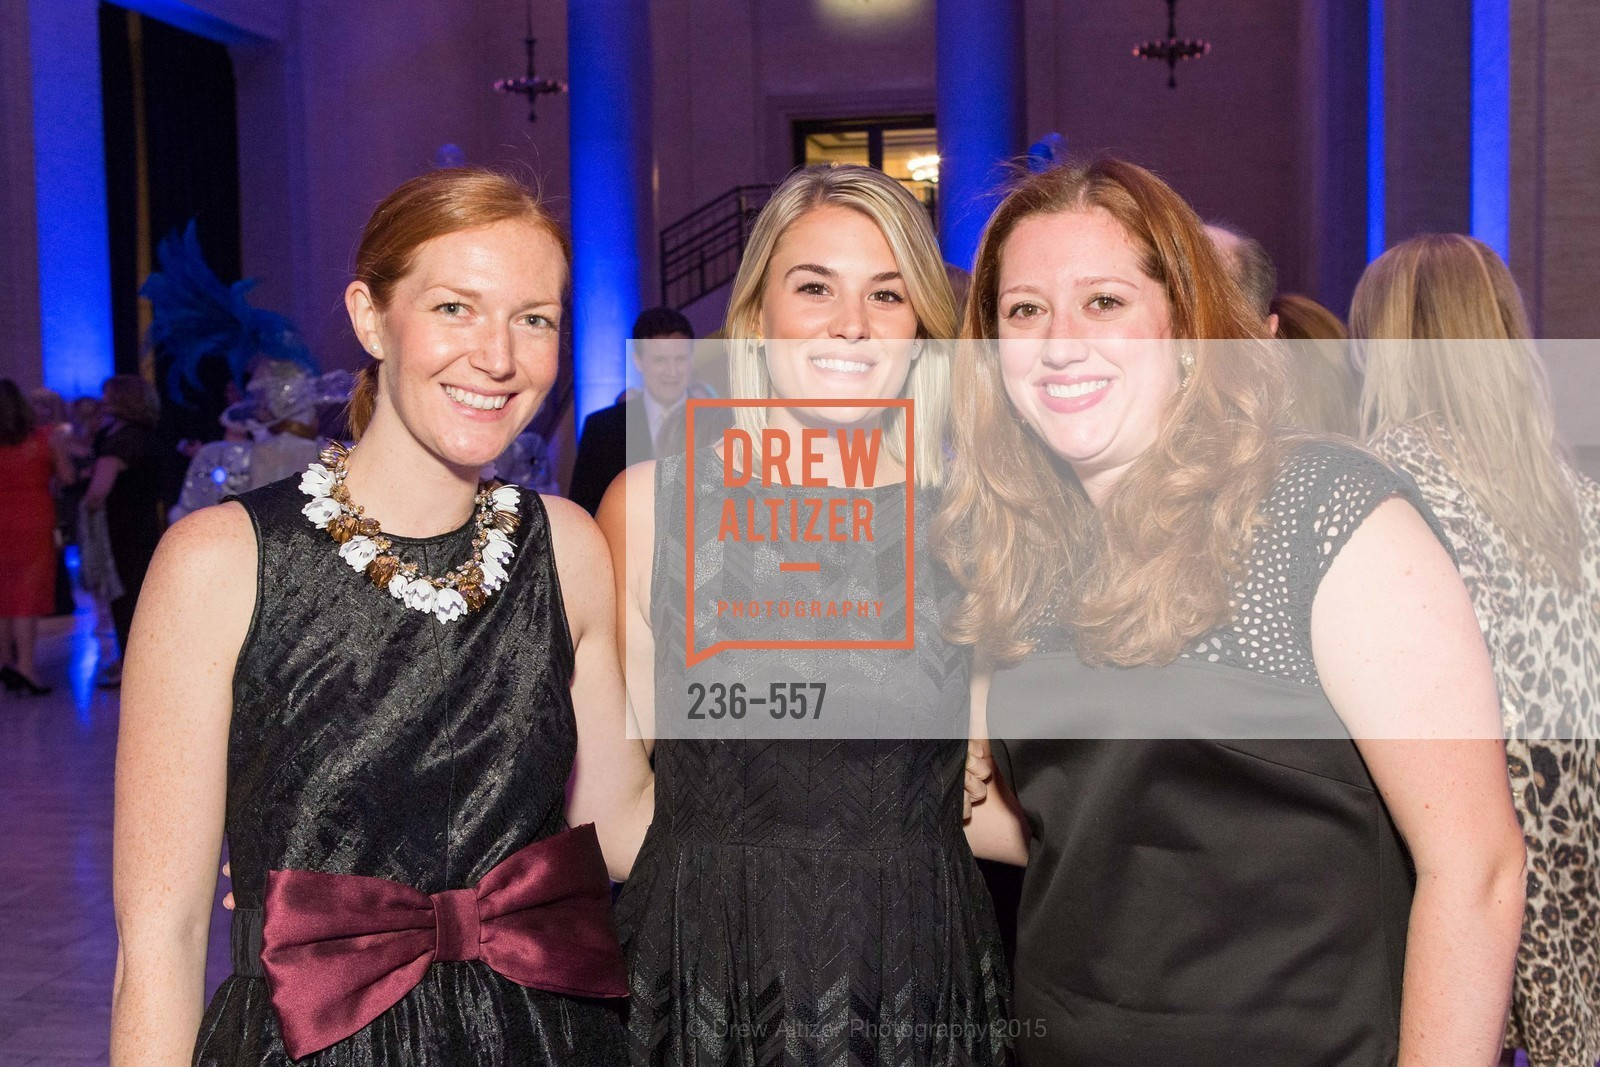 Willa Moore, Nicole Imhof, Lauren McCreery, Cirque du Soiree 2015, The Bentley Reserve. 2525 Van Ness St, November 19th, 2015,Drew Altizer, Drew Altizer Photography, full-service agency, private events, San Francisco photographer, photographer california